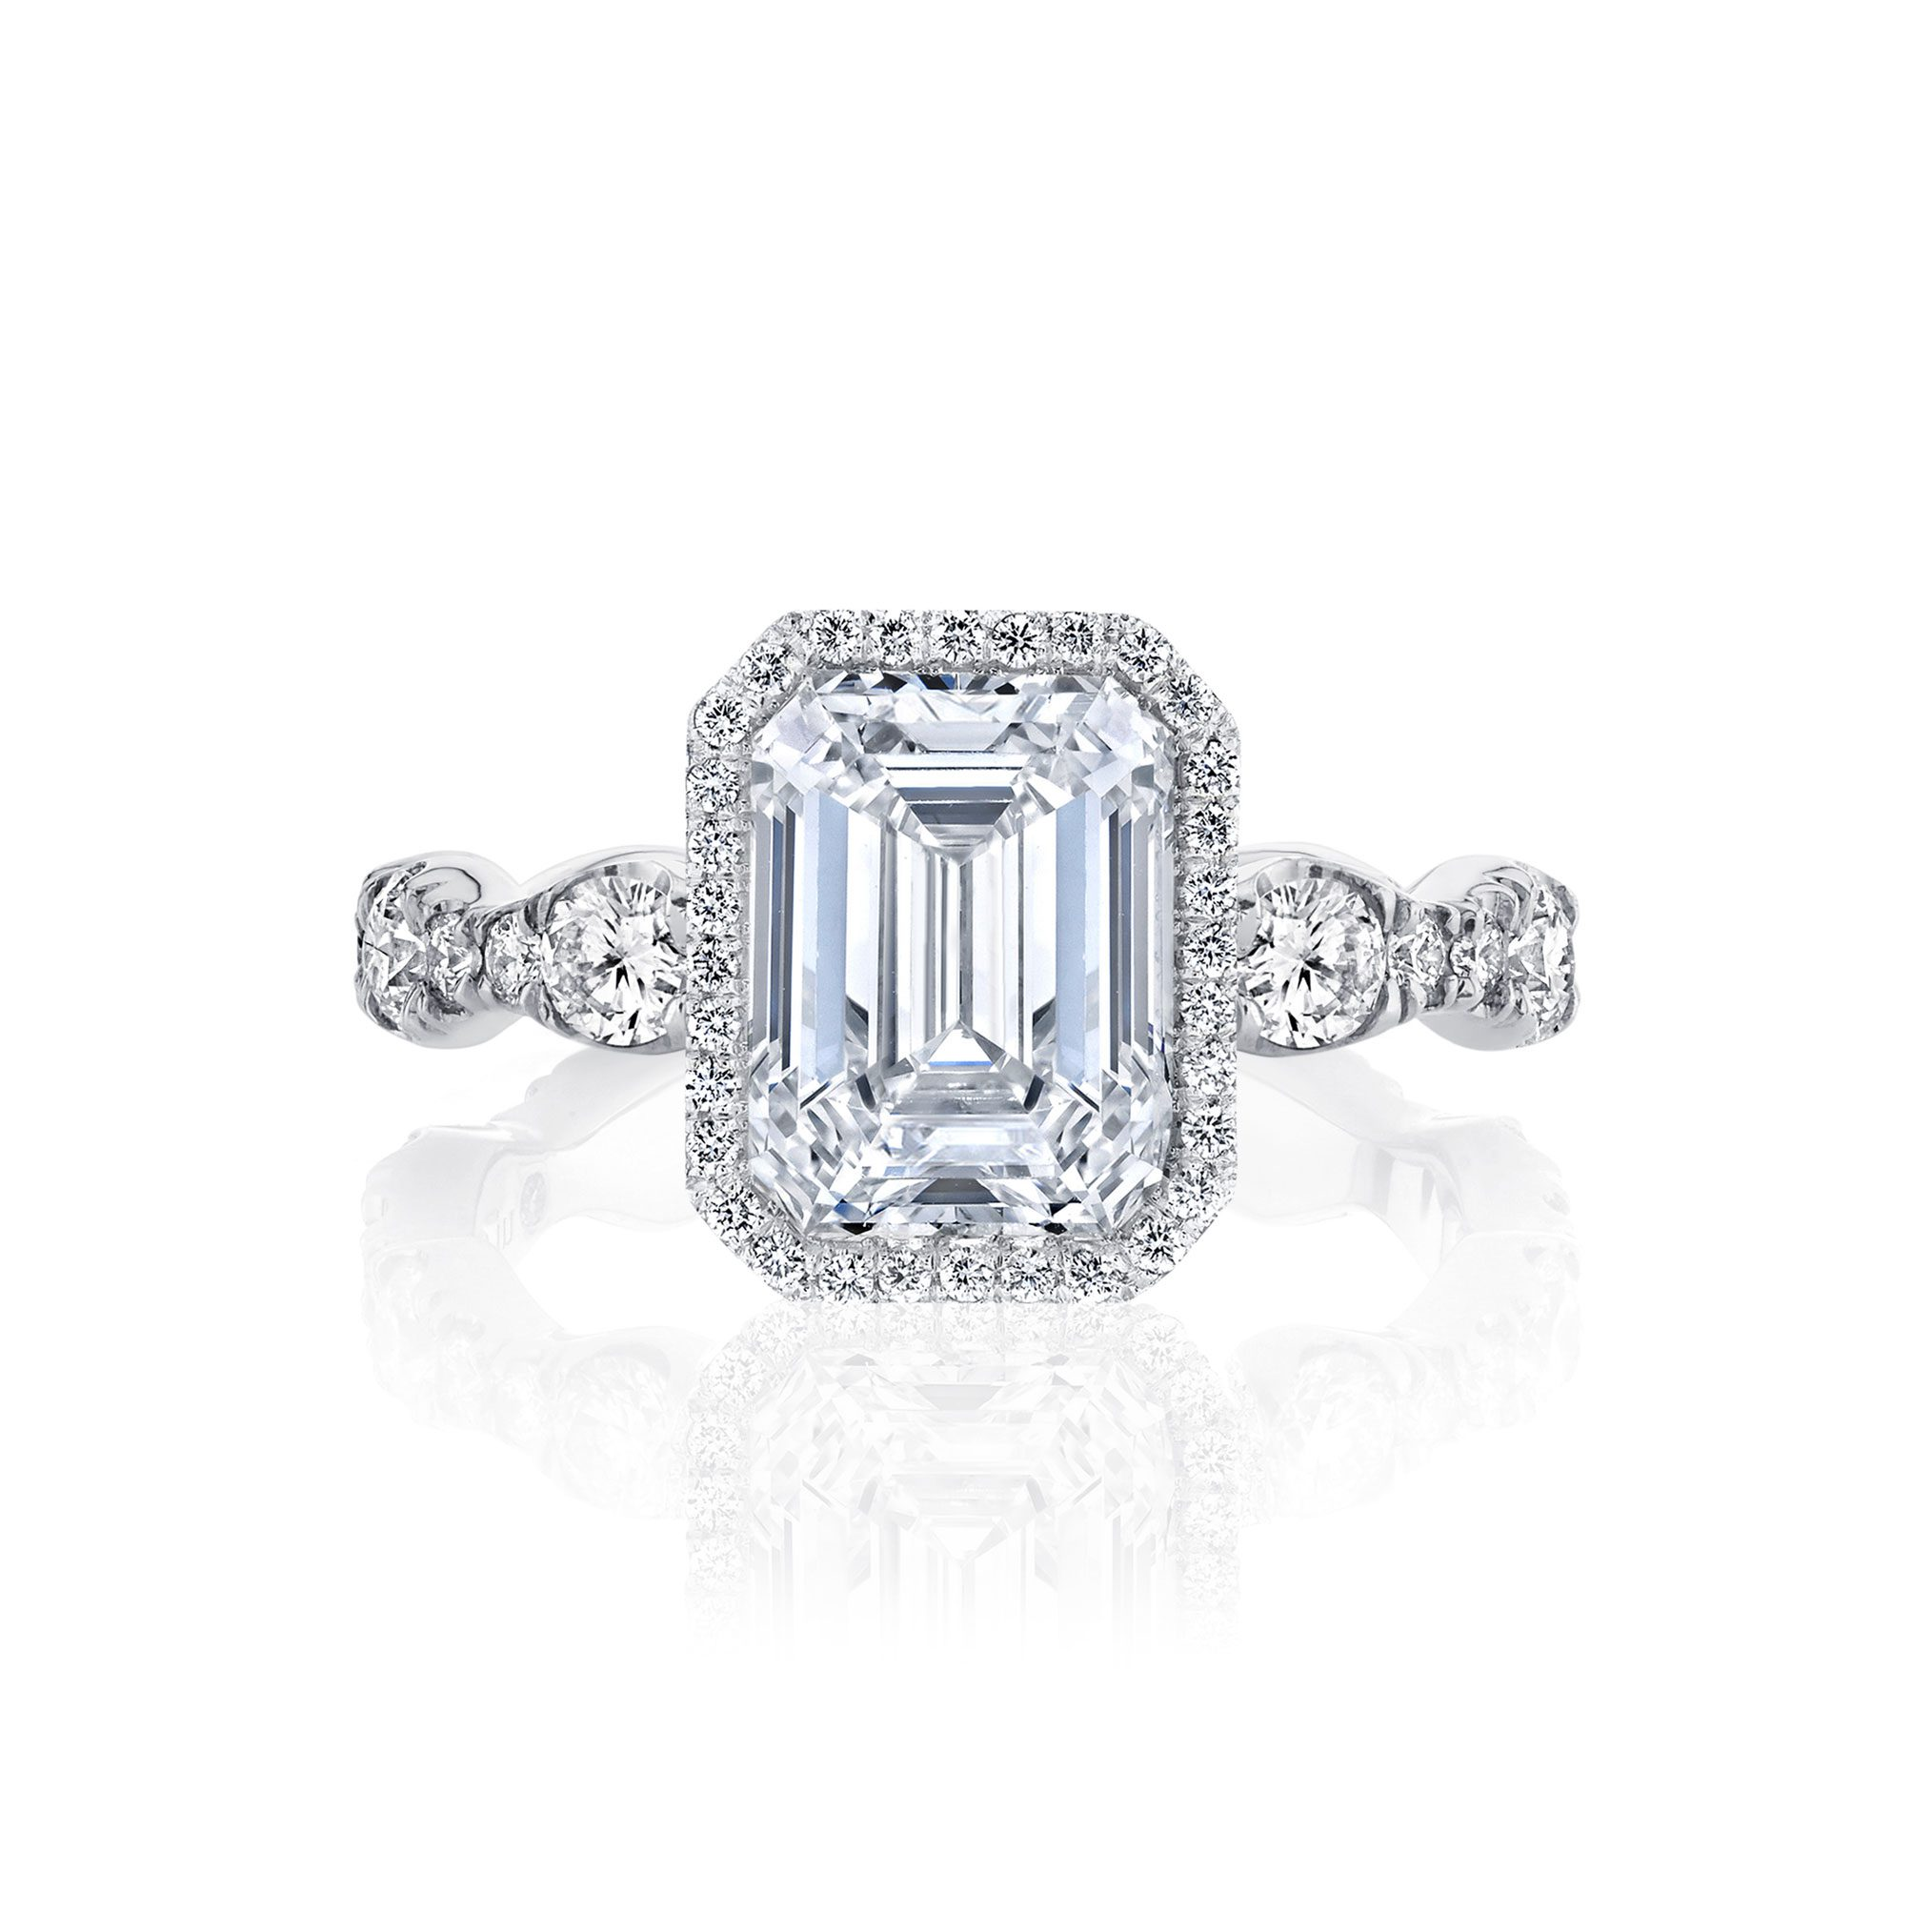 Yvonne Seamless Halo® Engagement Ring with Lab Grown Emerald Cut Diamond in 18k white gold